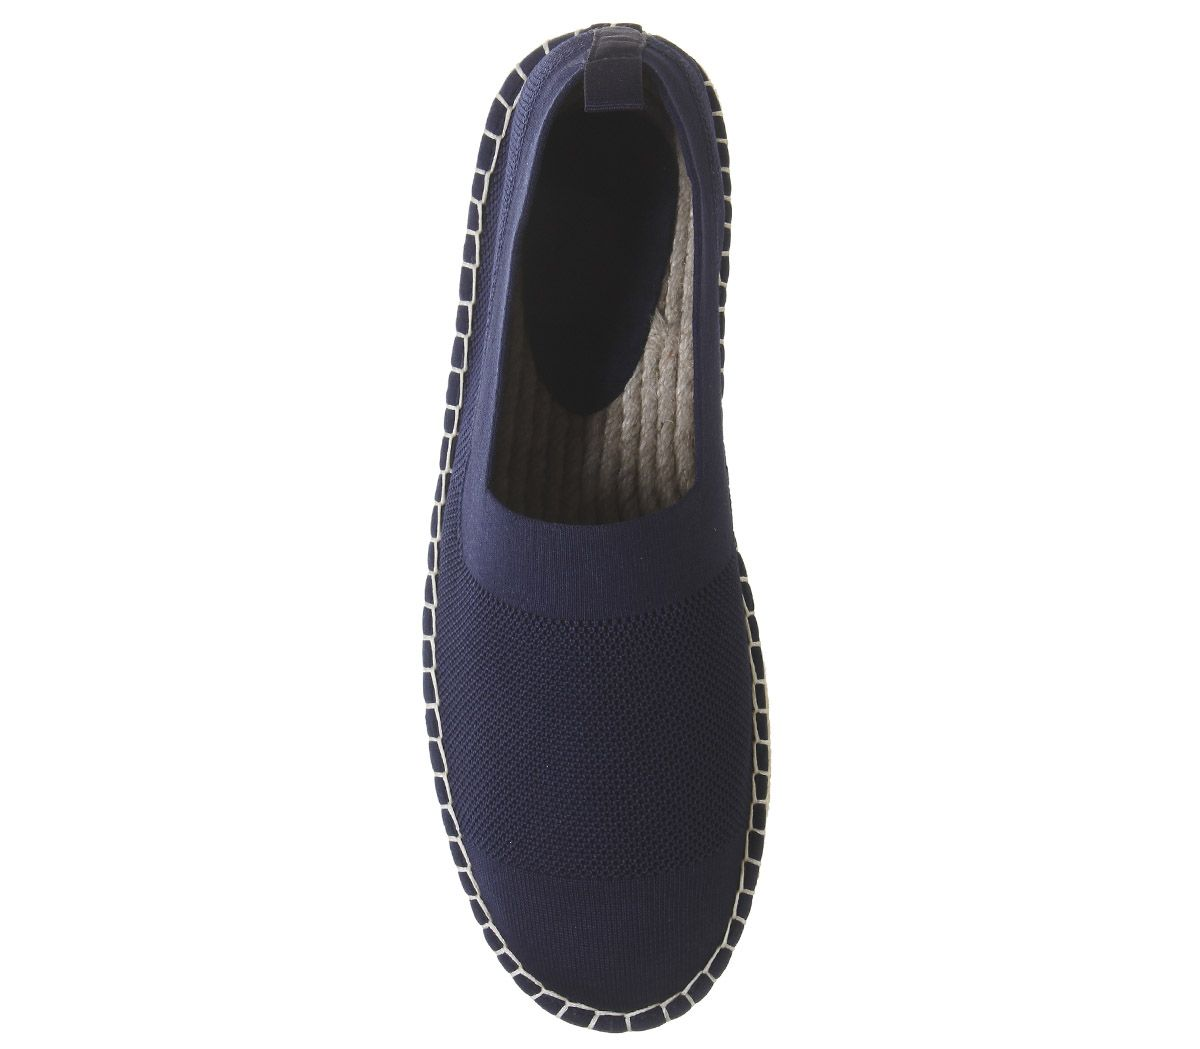 Mens-Office-Lombok-Knit-Espadrilles-Navy-Casual-Shoes thumbnail 10